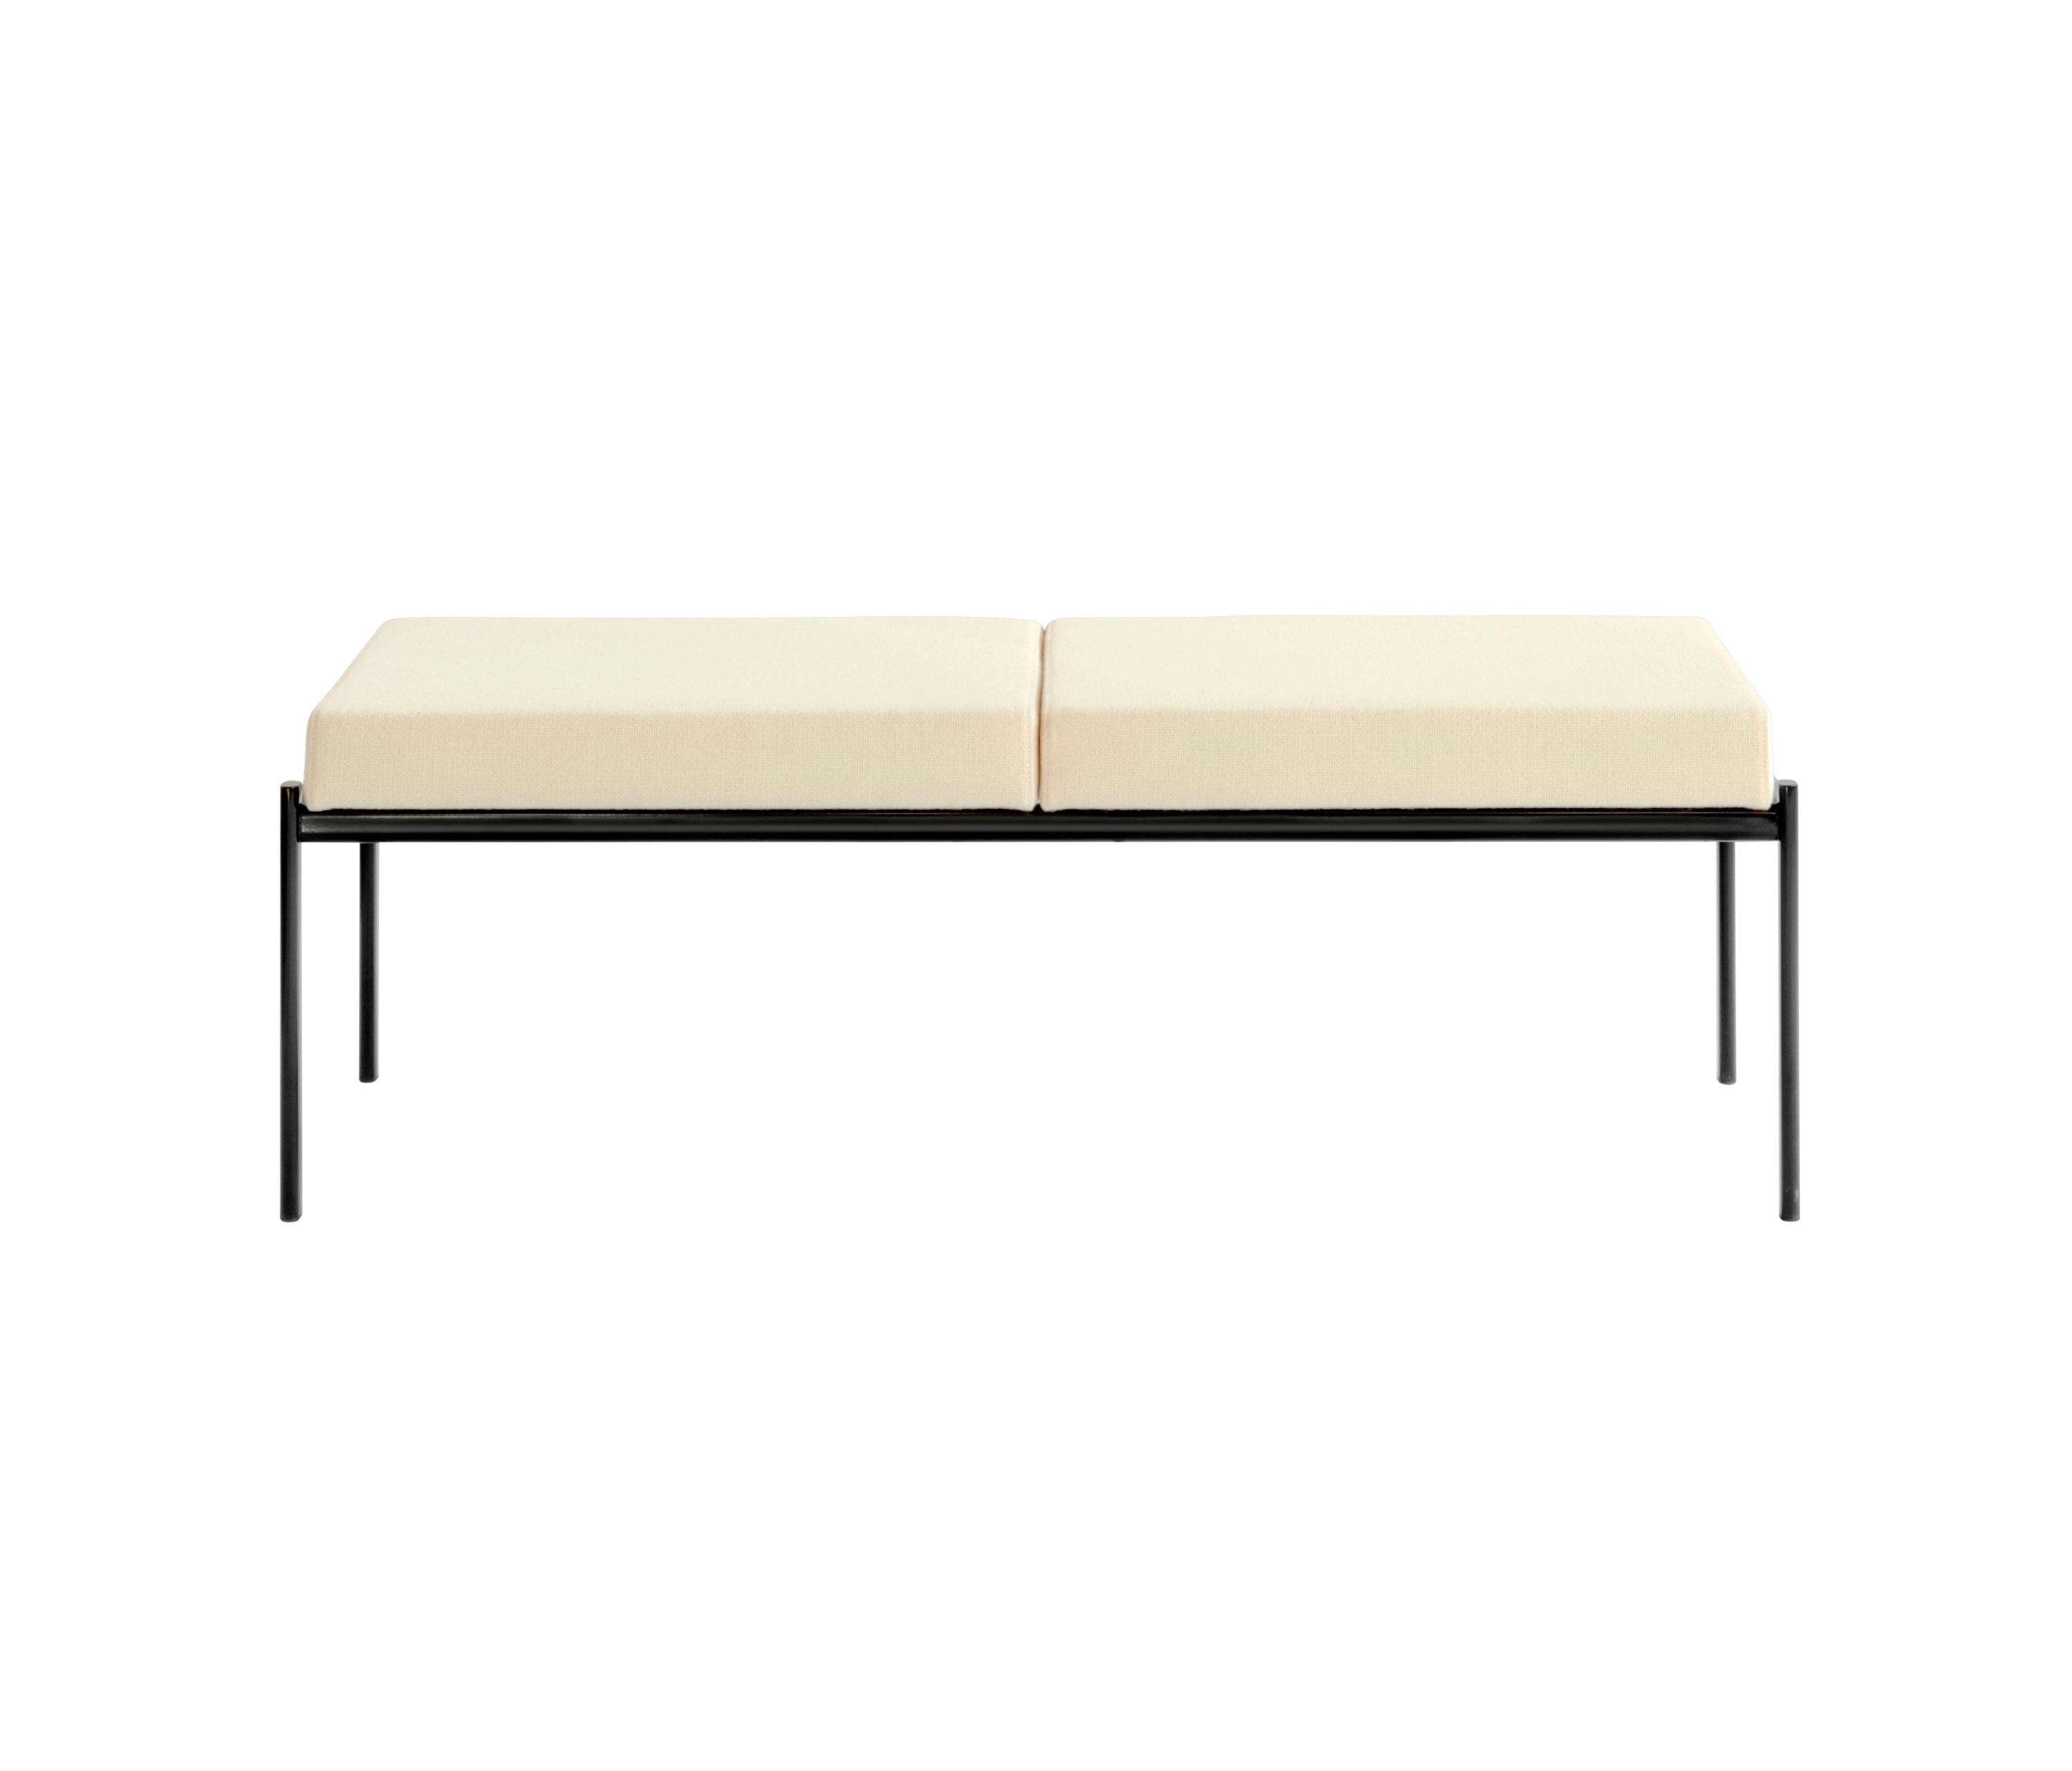 kiki bench | 2-seater - benches from artek | architonic 2 Seater Dining Bench